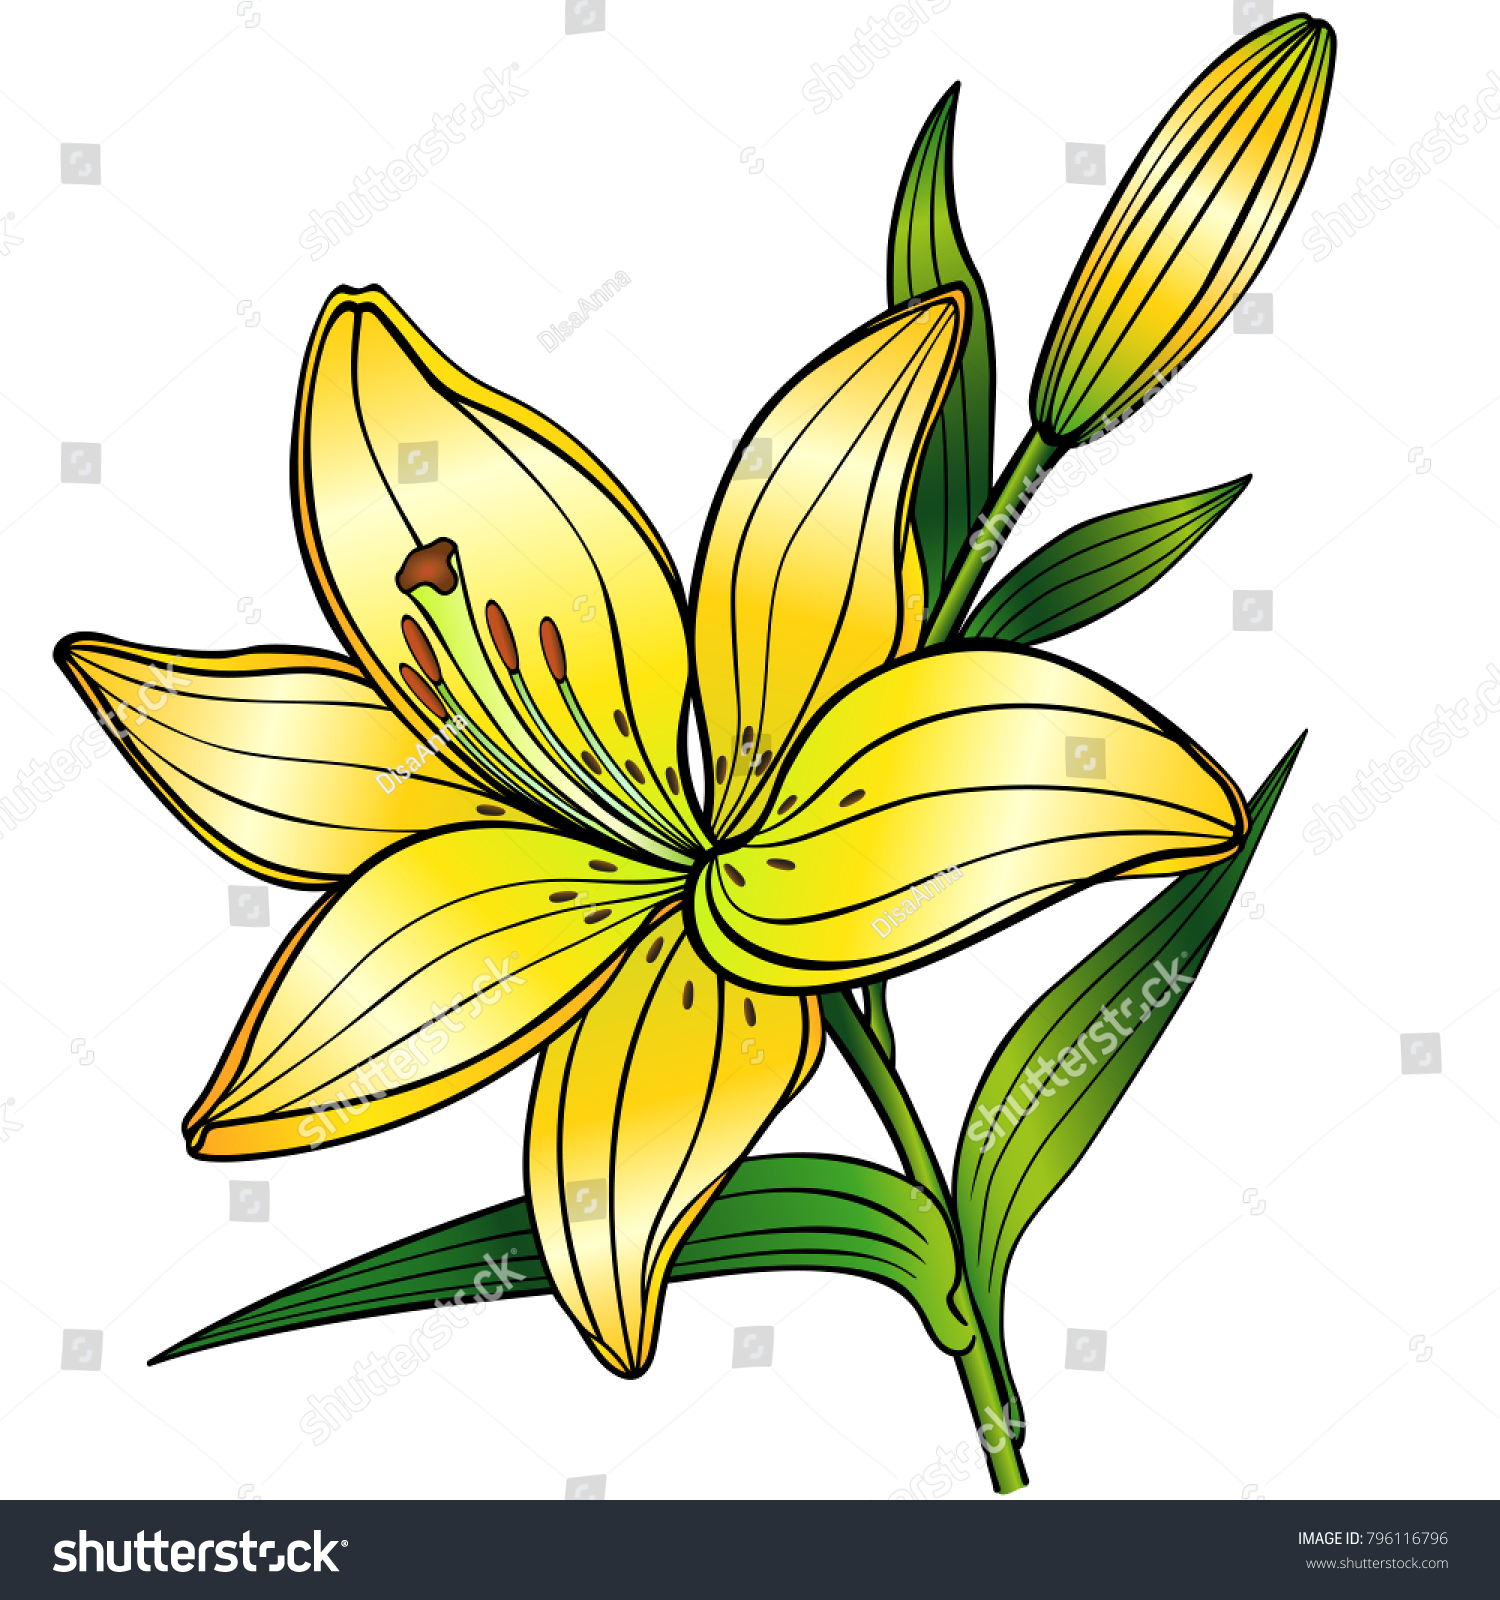 Yellow lily flower budlinear drawing gradient stock vector royalty yellow lily flower with budnear drawing with gradient izmirmasajfo